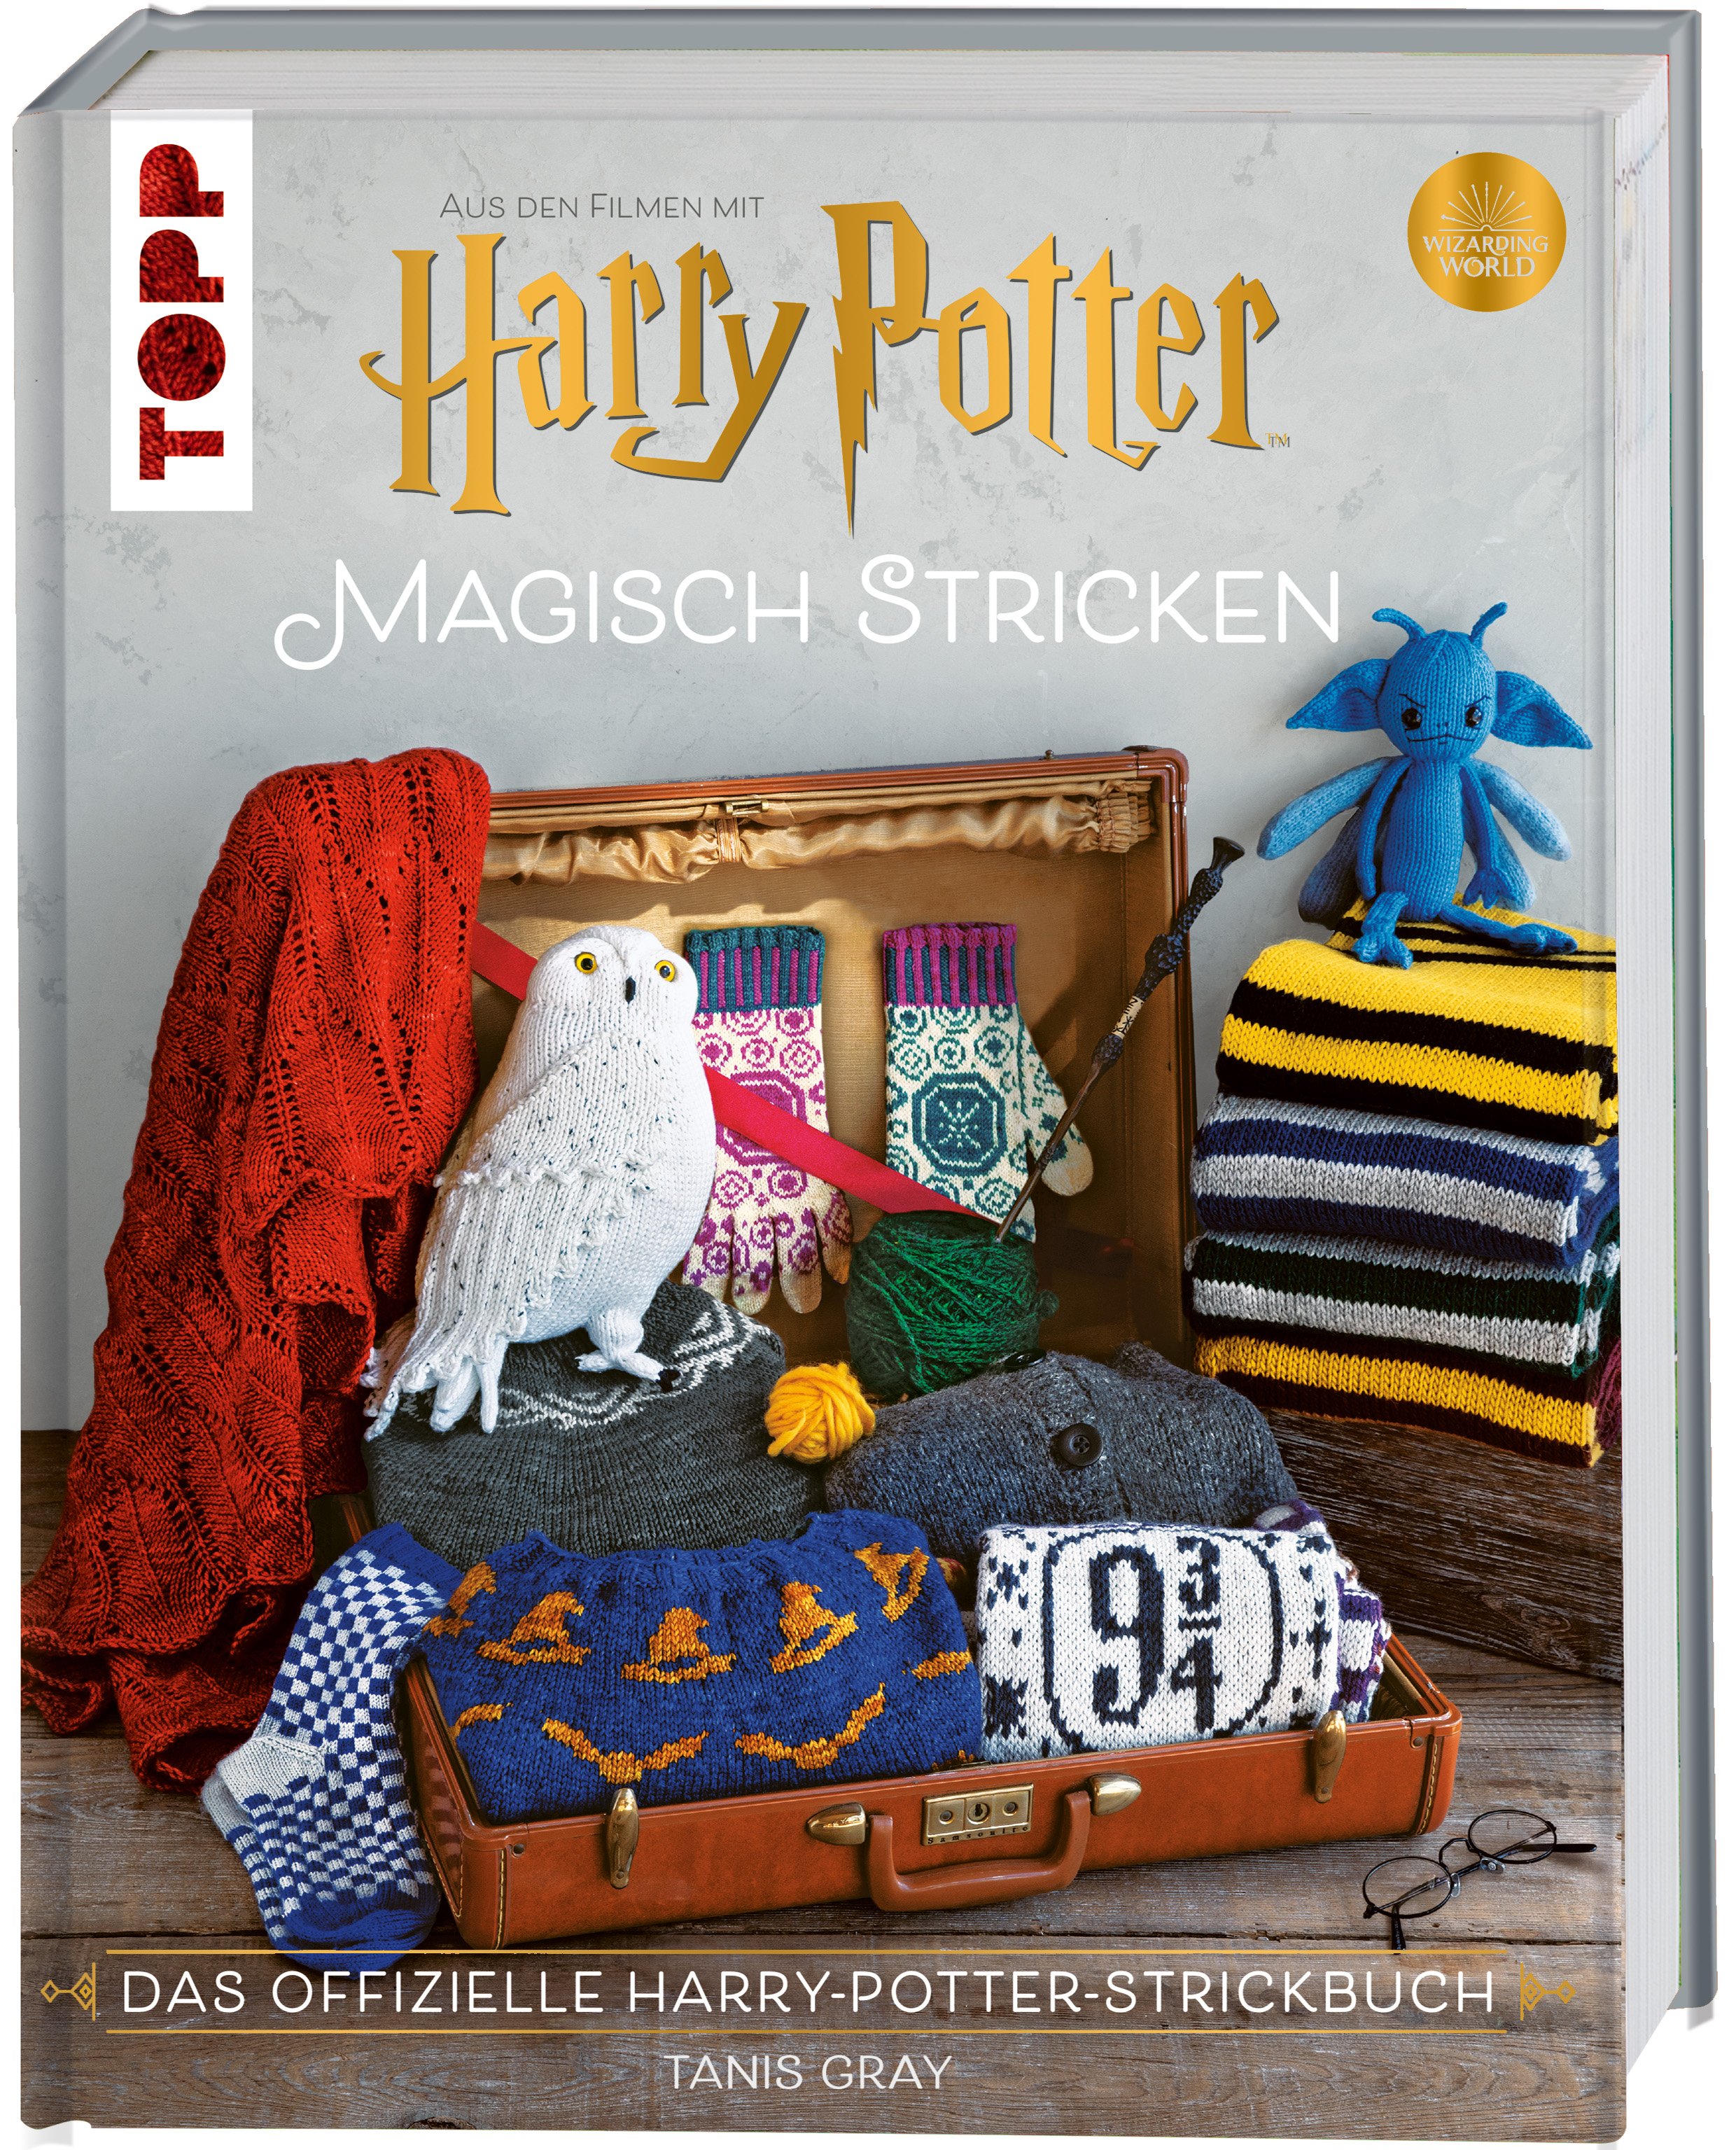 TOPP Harry Potter_Magisch stricken